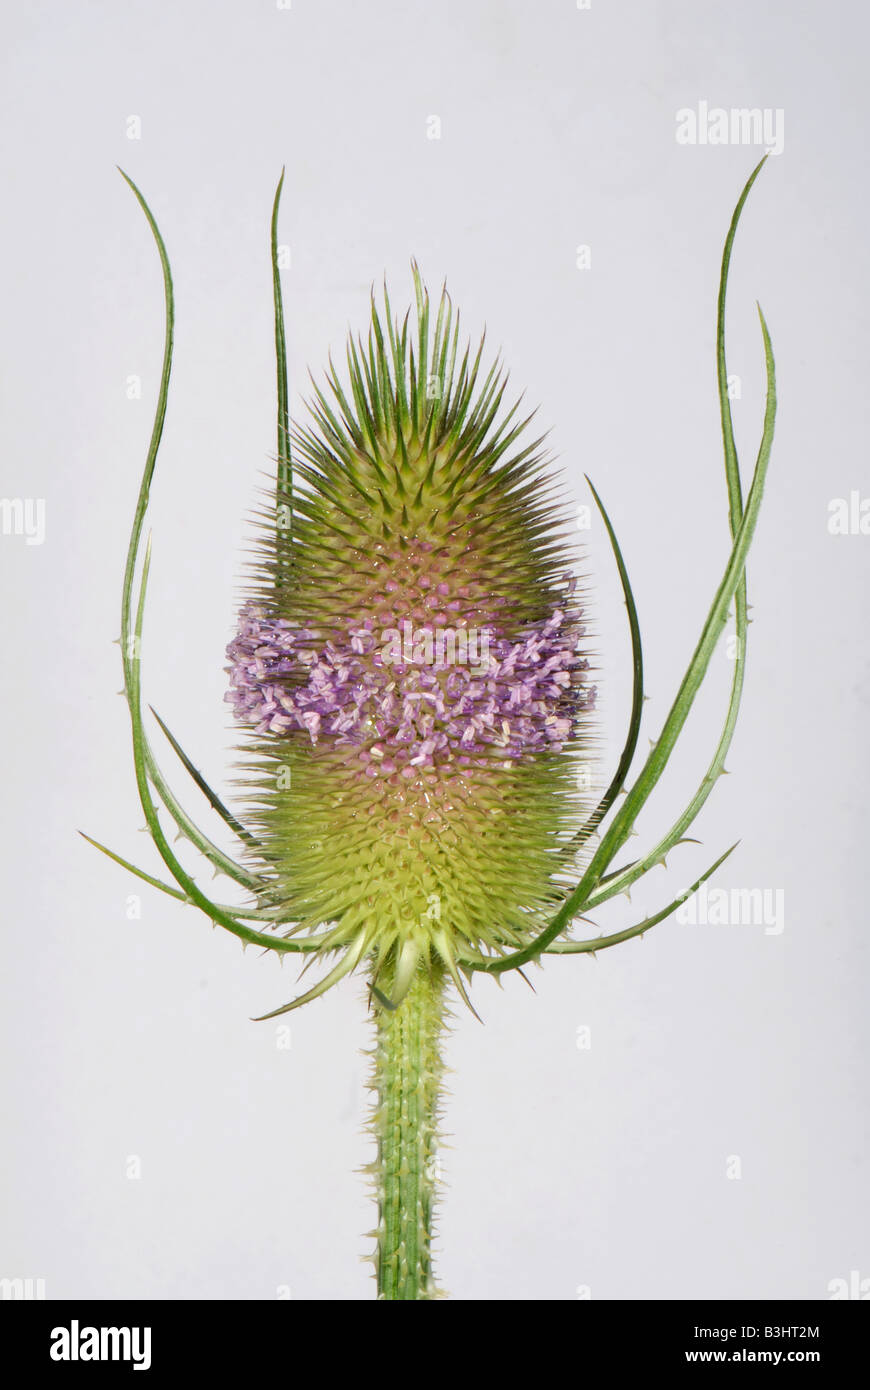 Teasel Dipsacus fullonum with a single whorl of open flowers on spiny flowerhead - Stock Image